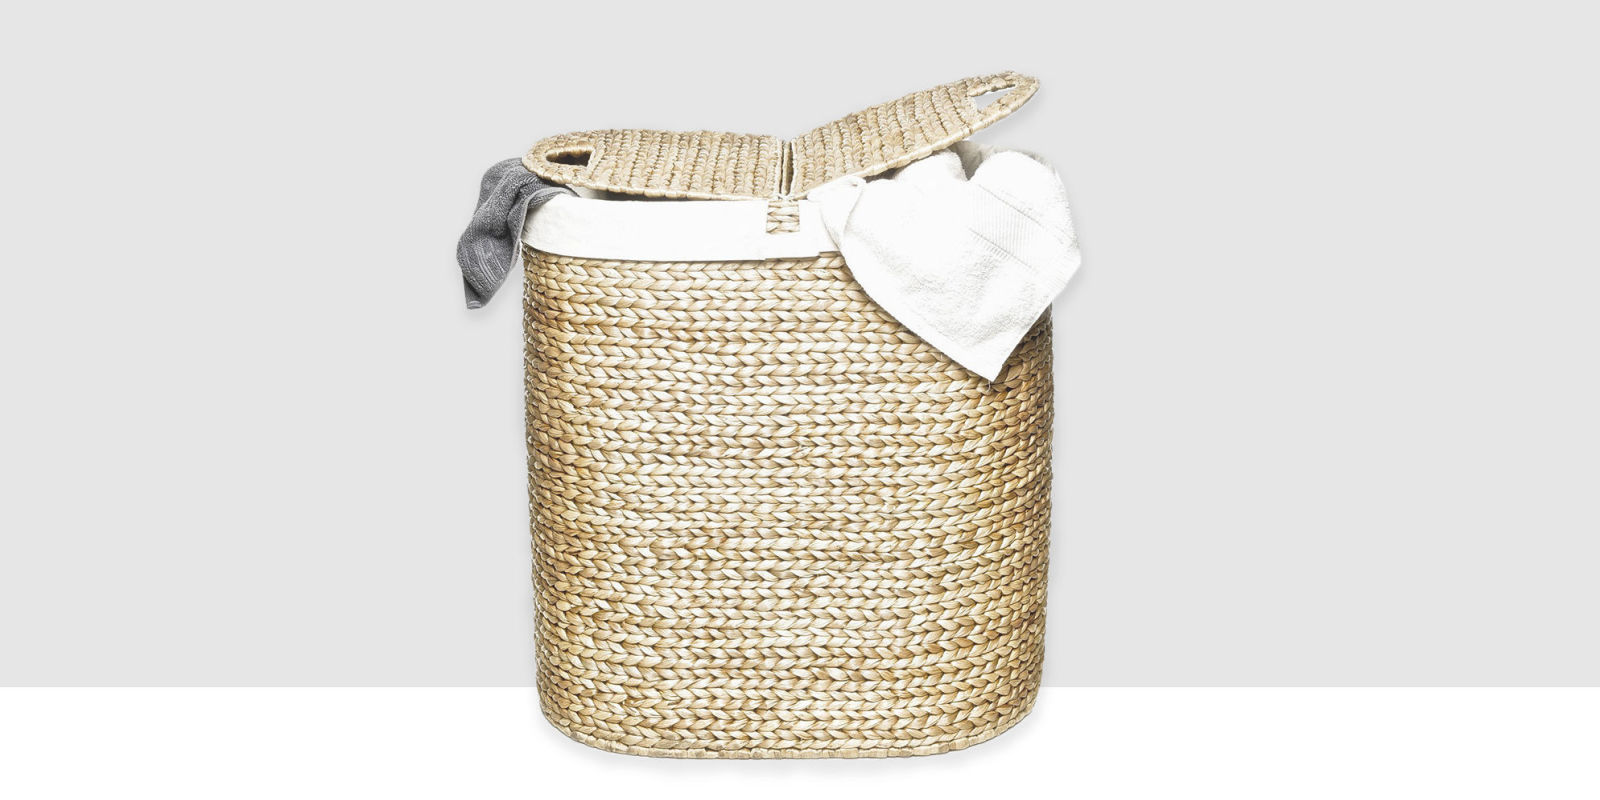 Wicker Laundry Baskets 14 Best Wicker Hampers In 2018 Decorative Woven And Wicker